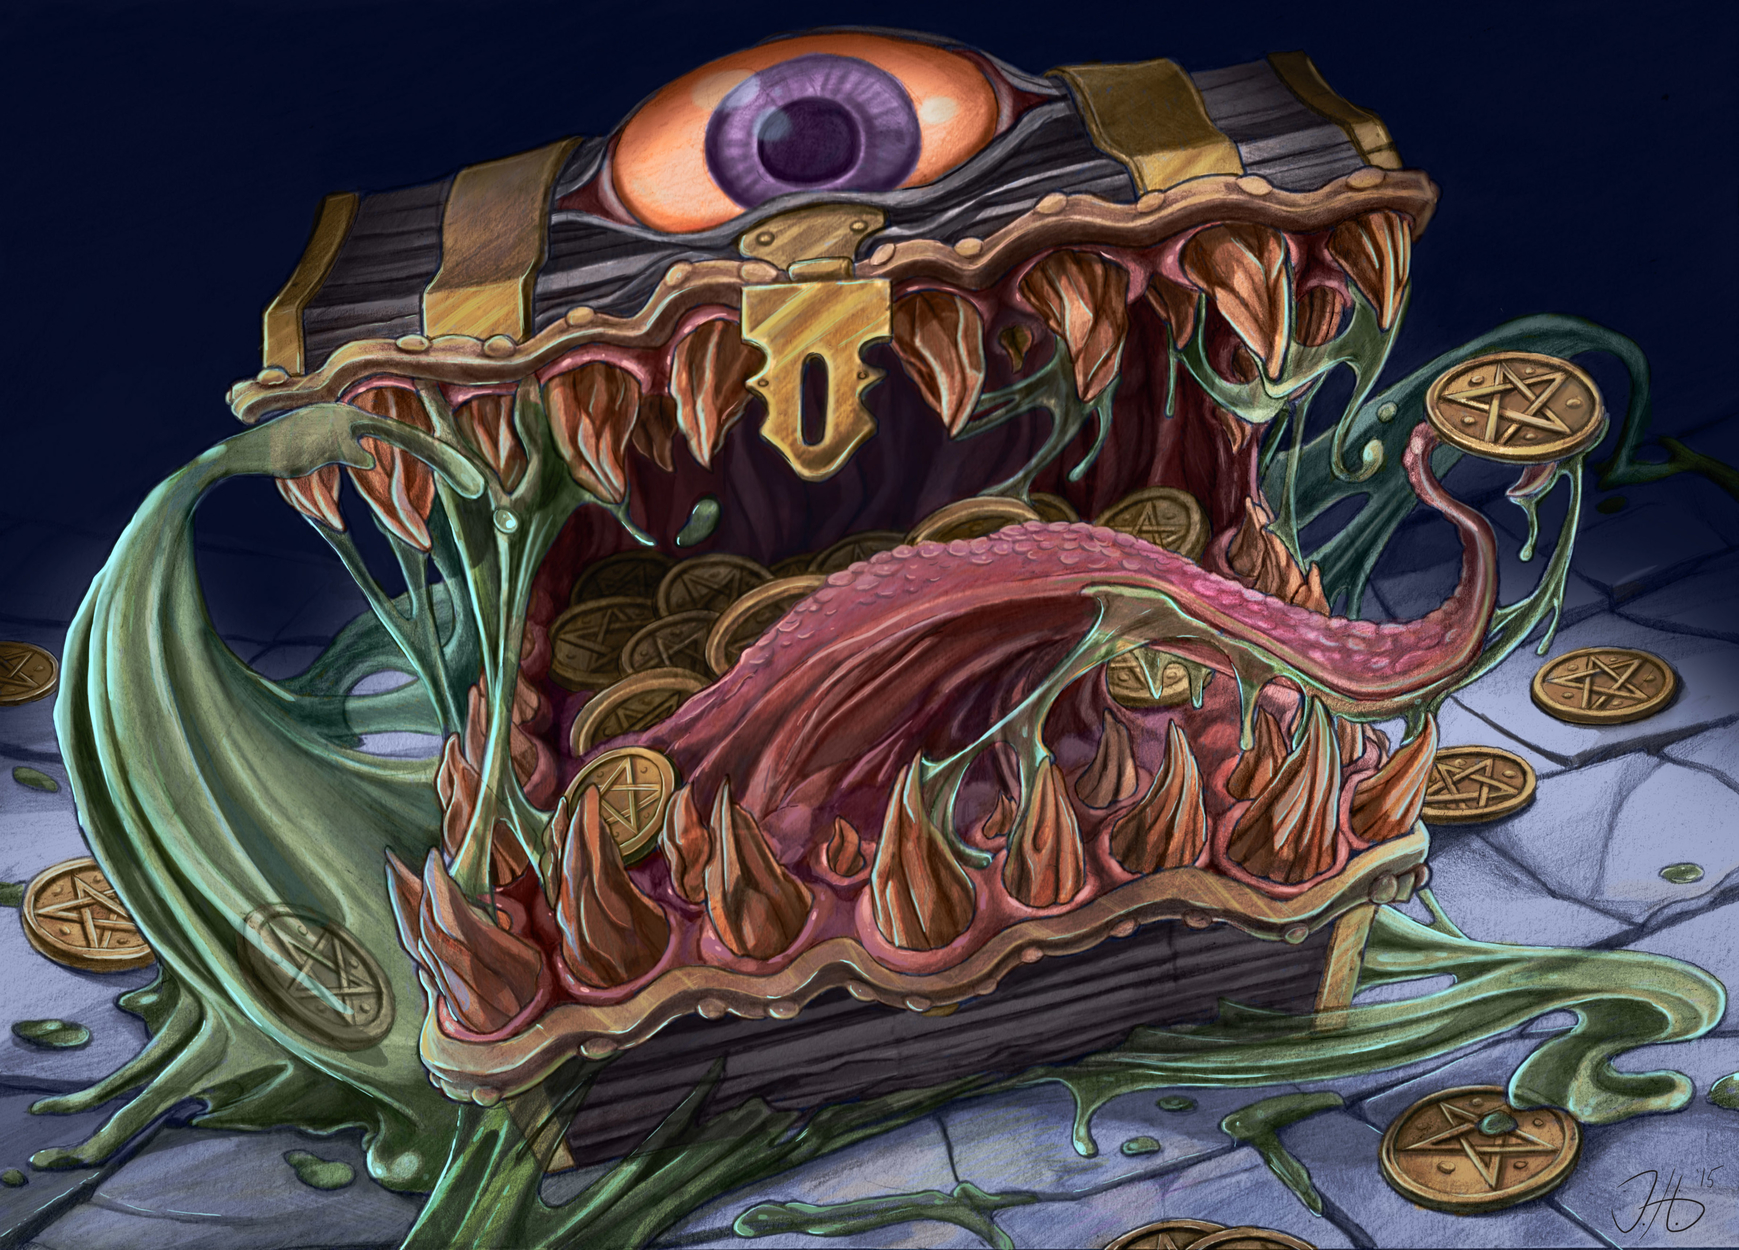 The Mimic Artwork by Jacqueline  Hines